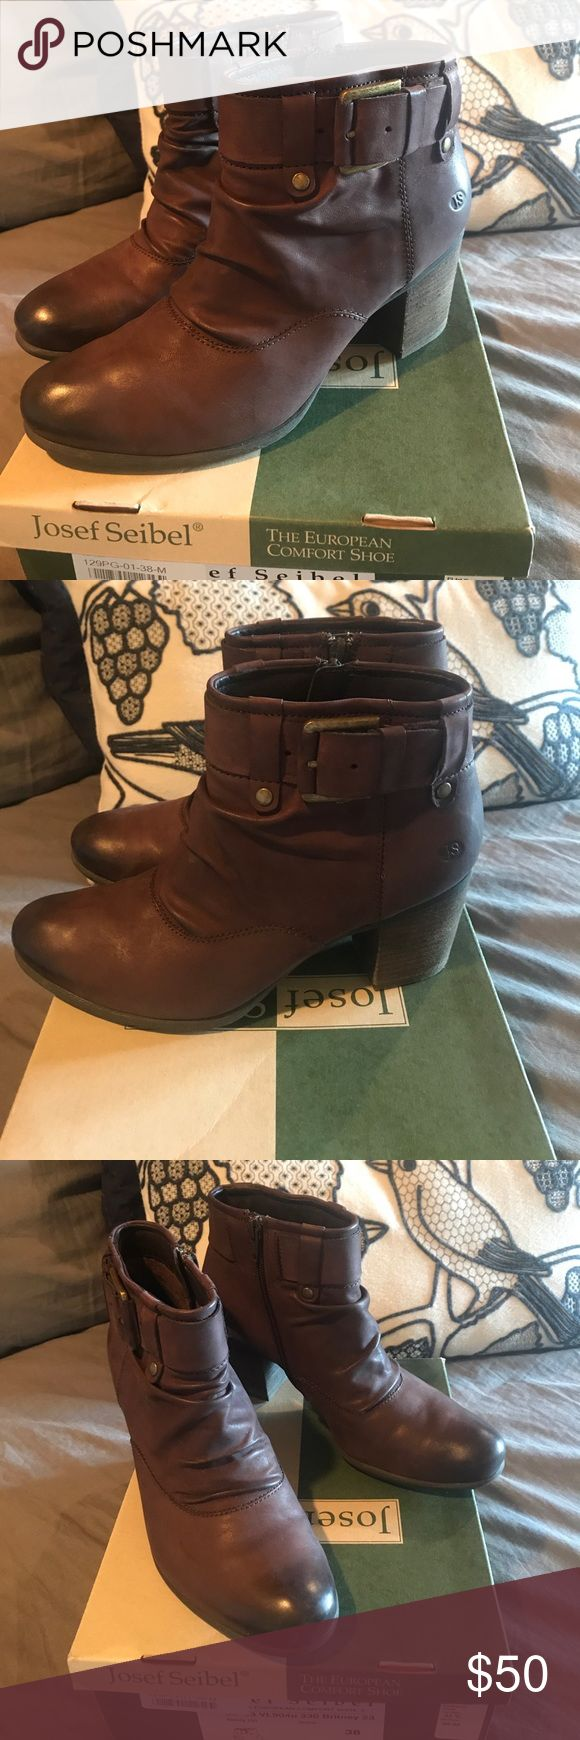 Josef Seibel Boots Super cute ! New in box . Color is Nesty Oil .European size is 38 . Which is 7.5-8 . Thanks ! Josef Seibel Shoes Ankle Boots & Booties